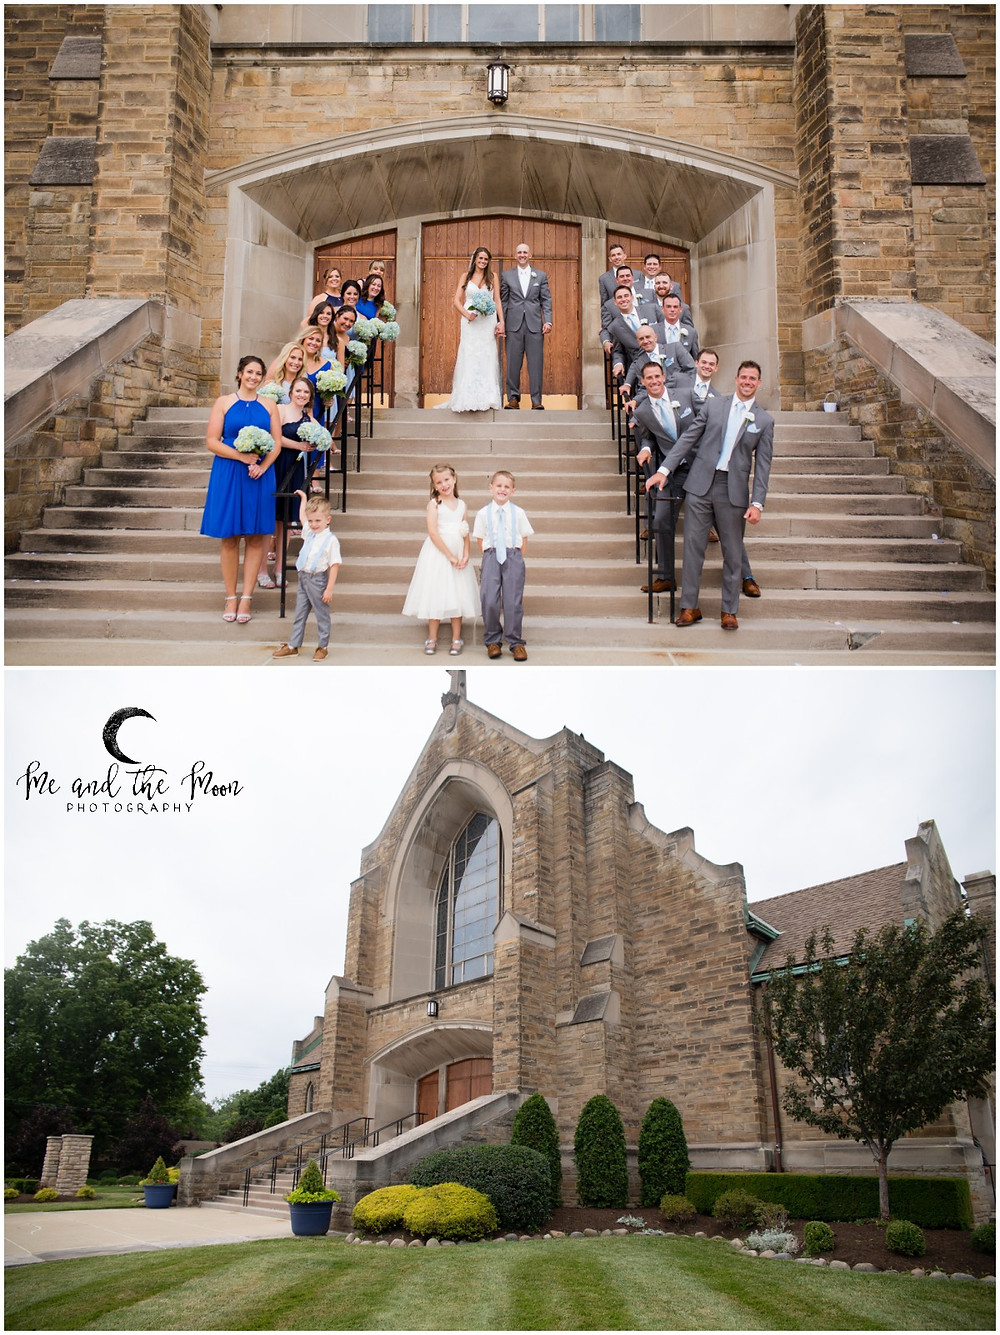 wedding party in front of church